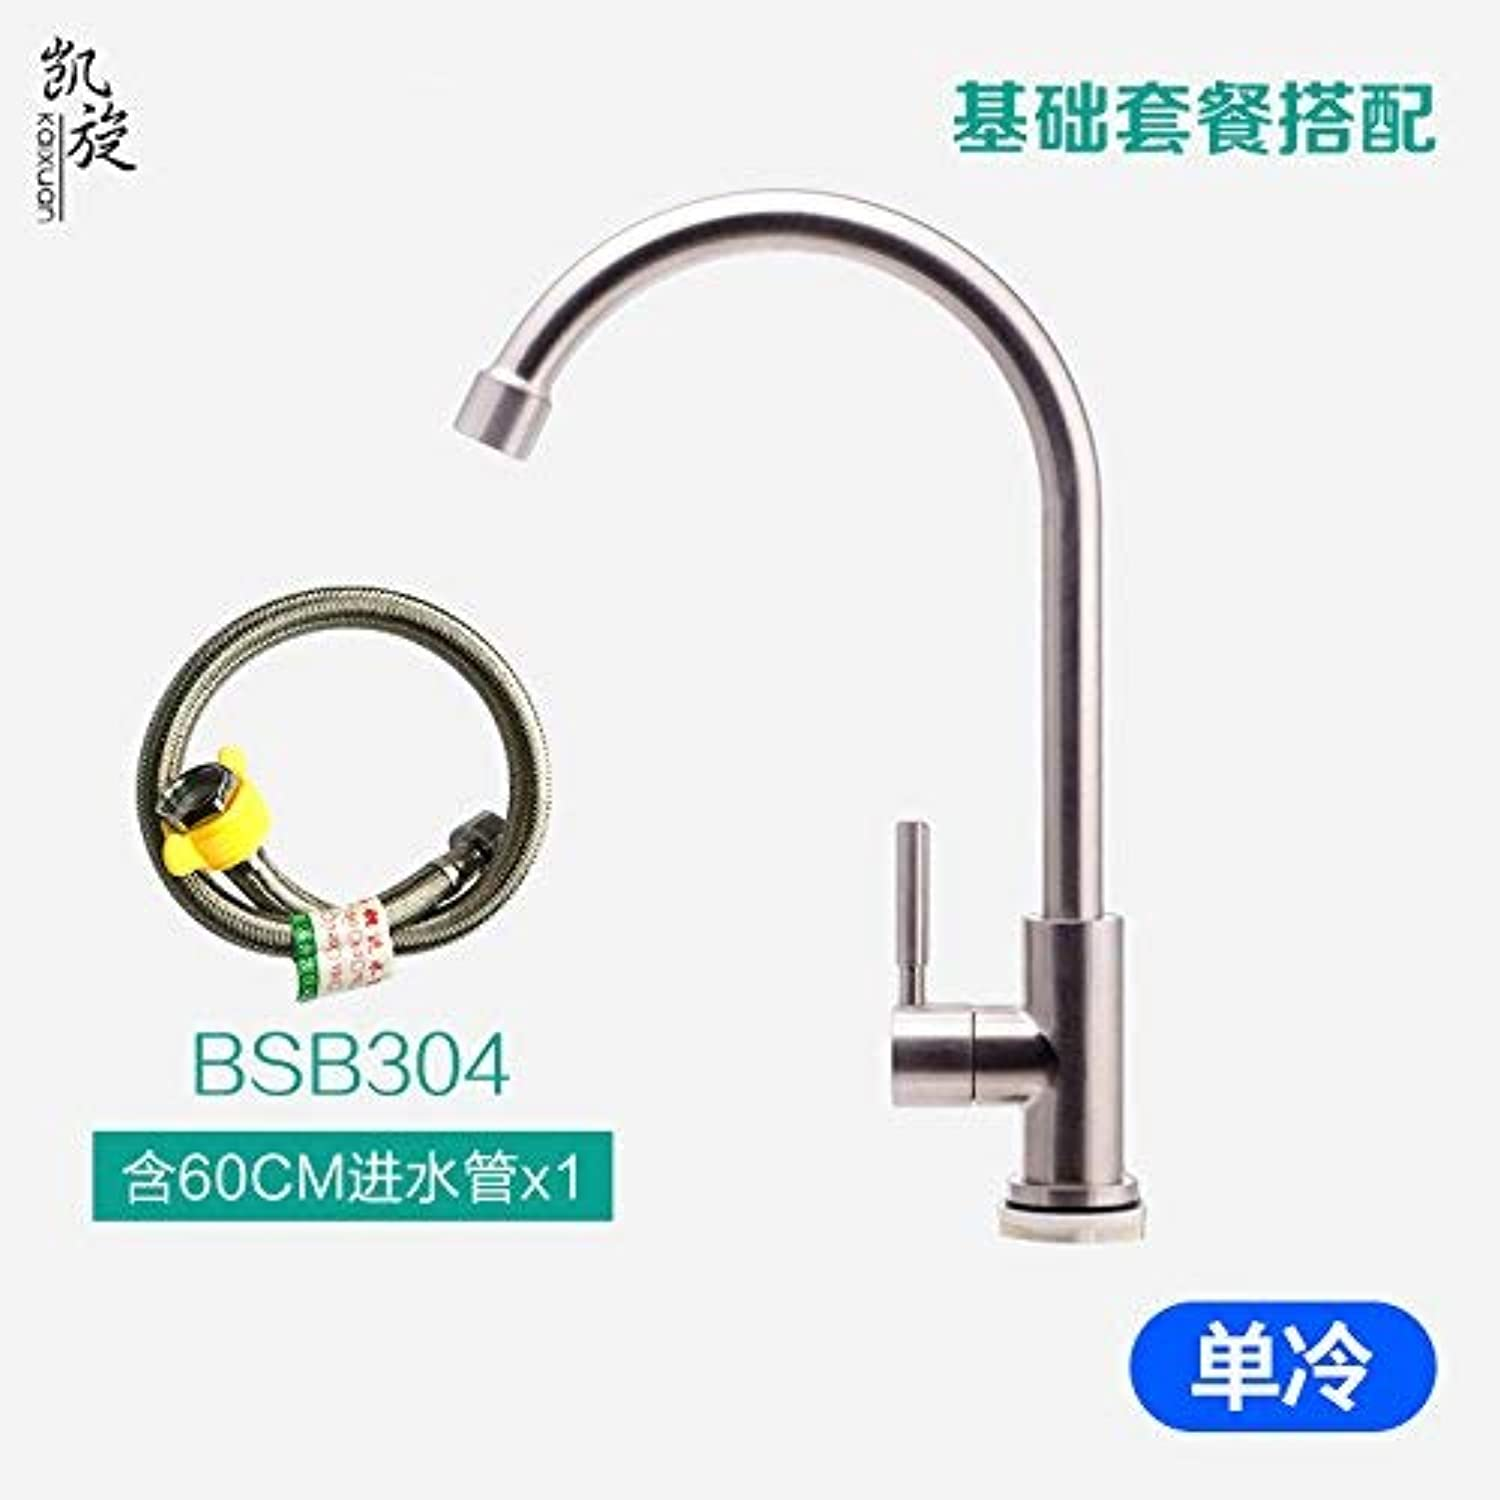 Oudan Hot and cold kitchen faucet dish washing basin basin with high redation of dish washing basin sink mixer 304 stainless steel 7 fields, Big Bend hot and cold faucet pipe line 8821 (color   8)